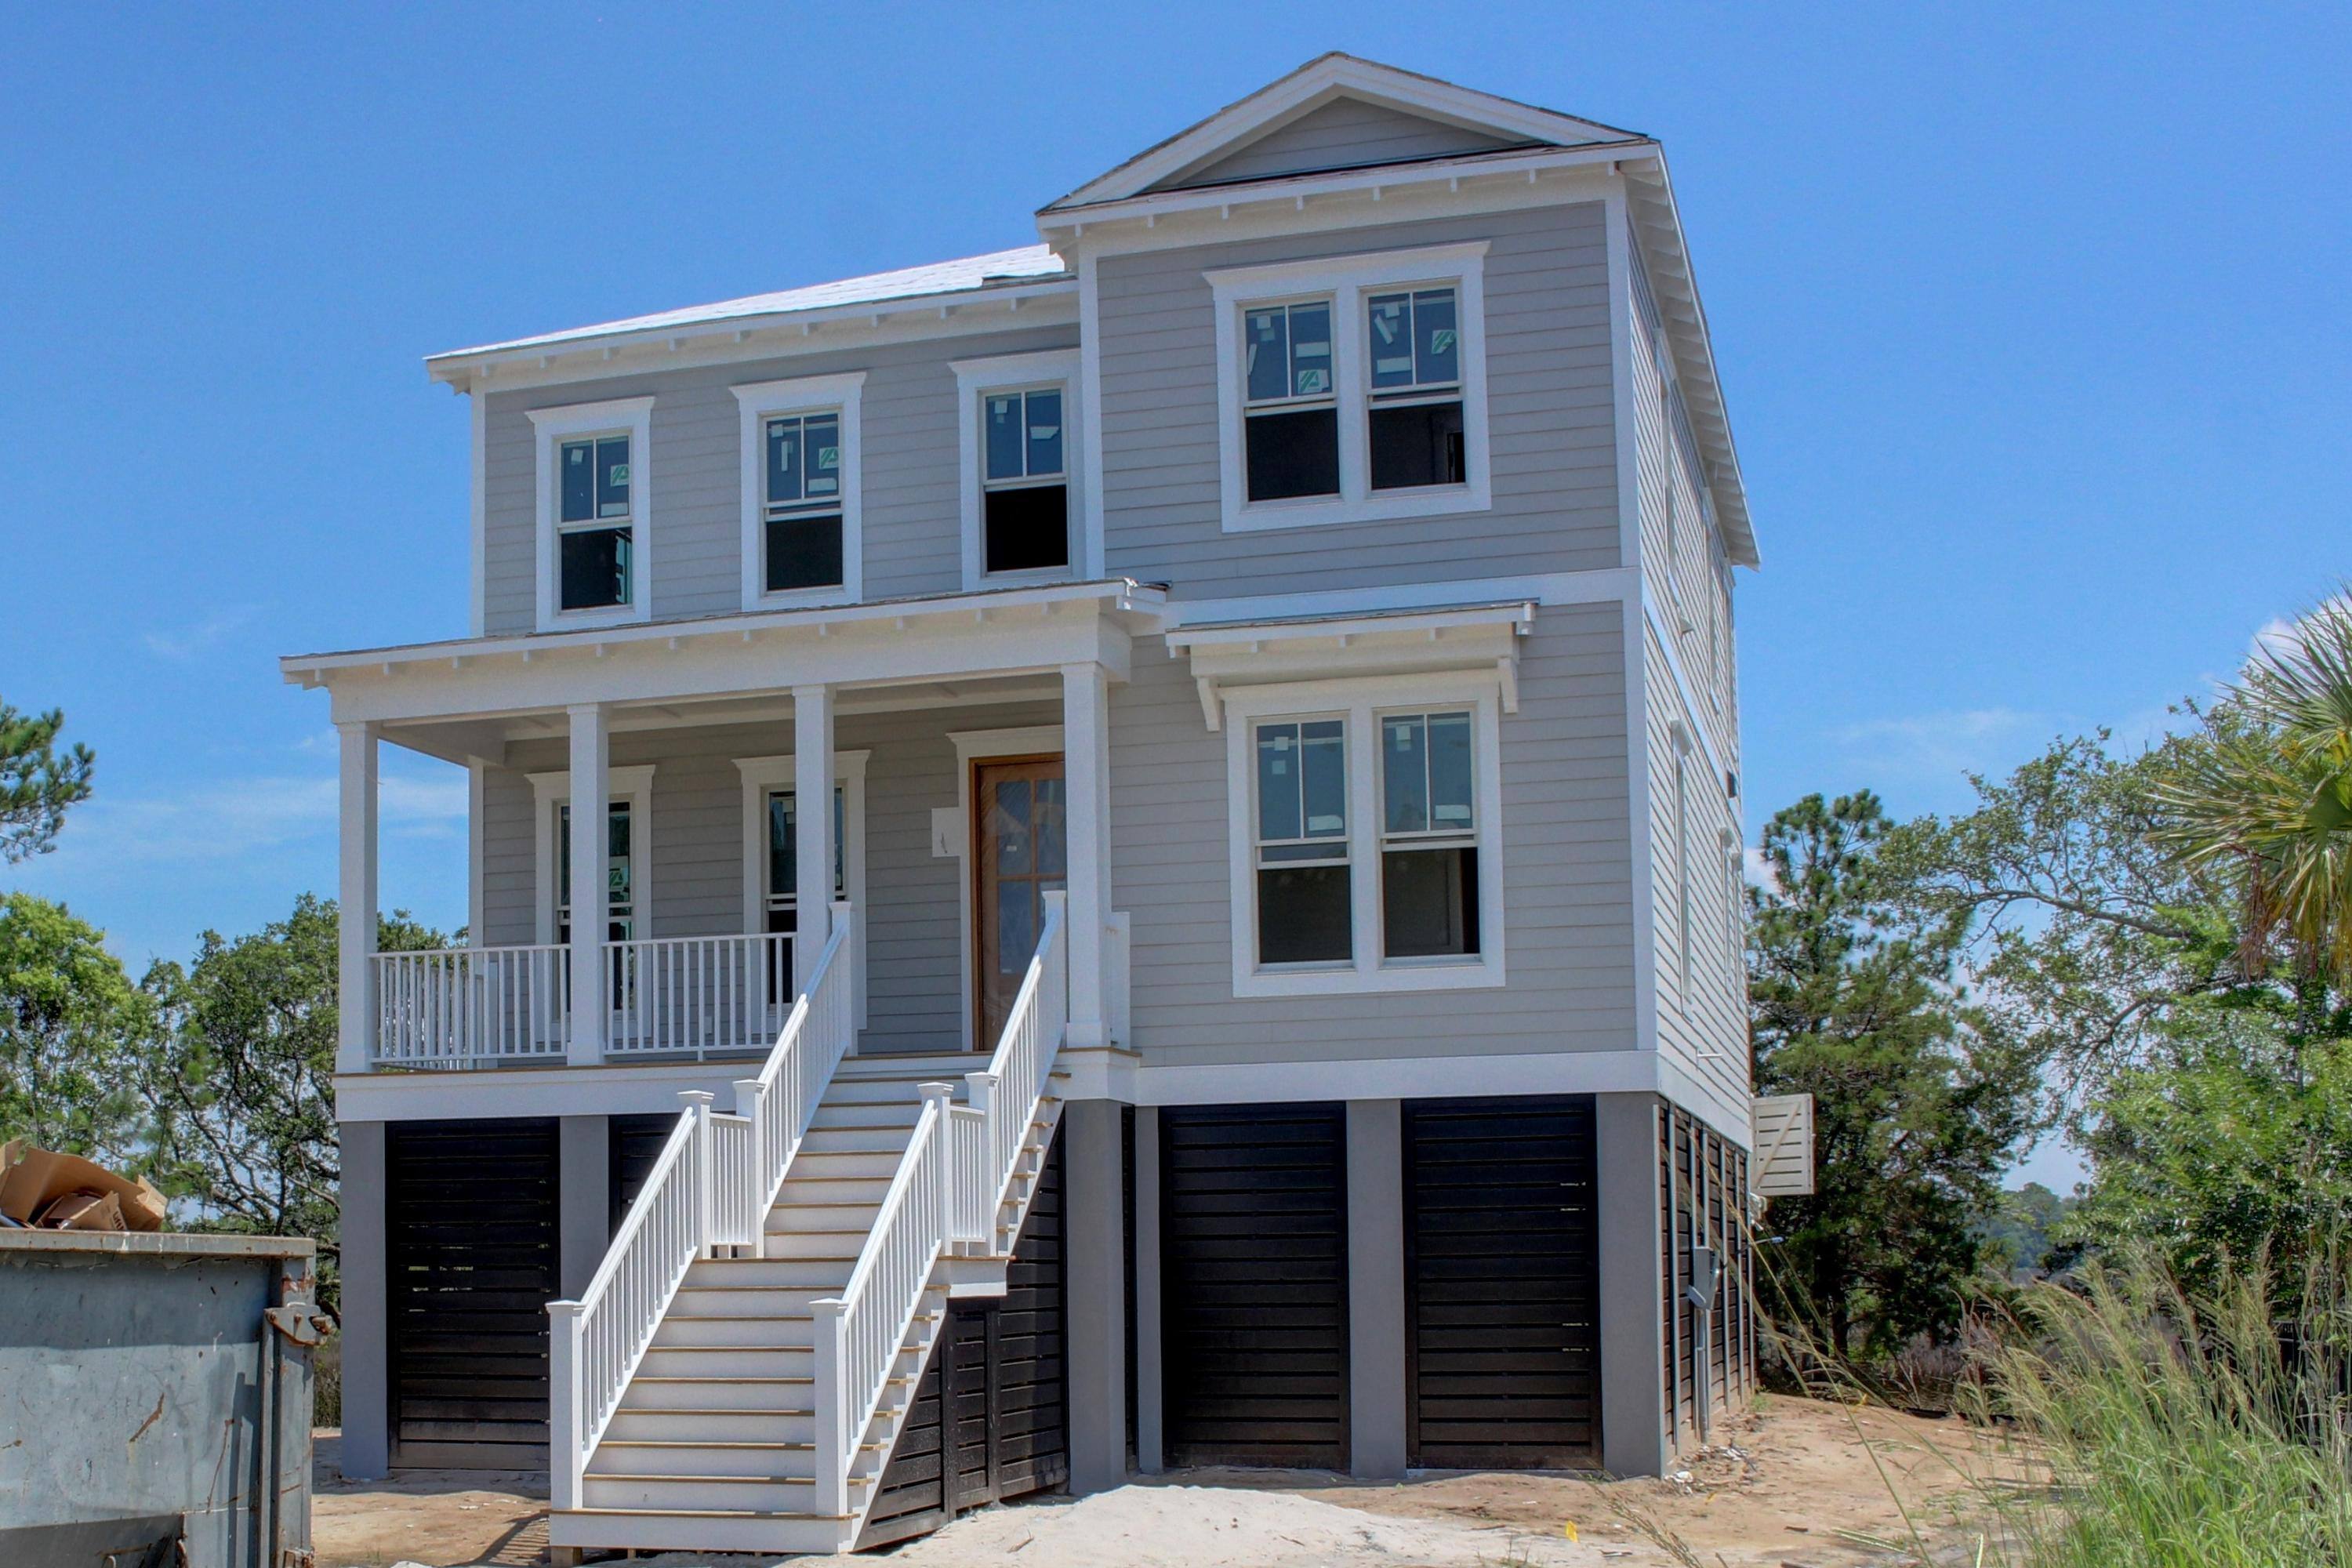 Home for sale 1813 Rushland Grove Lane, Rushland, Johns Island, SC